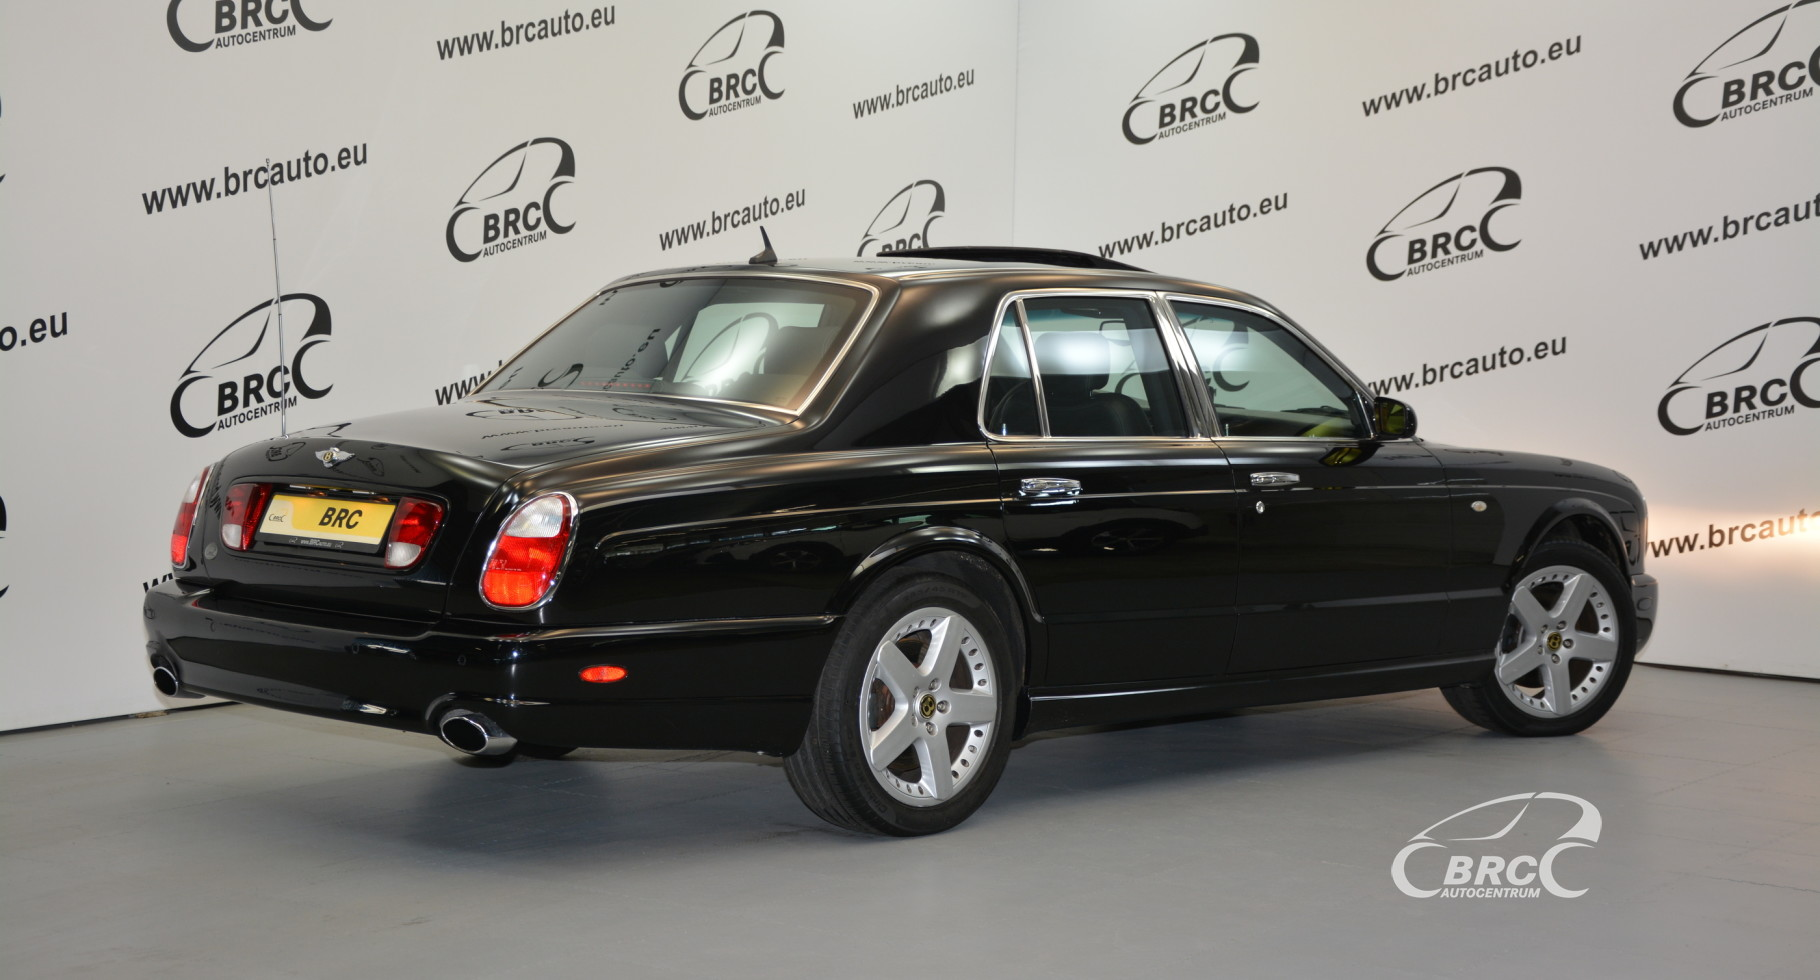 Bentley Arnage 6.8 T Automatas